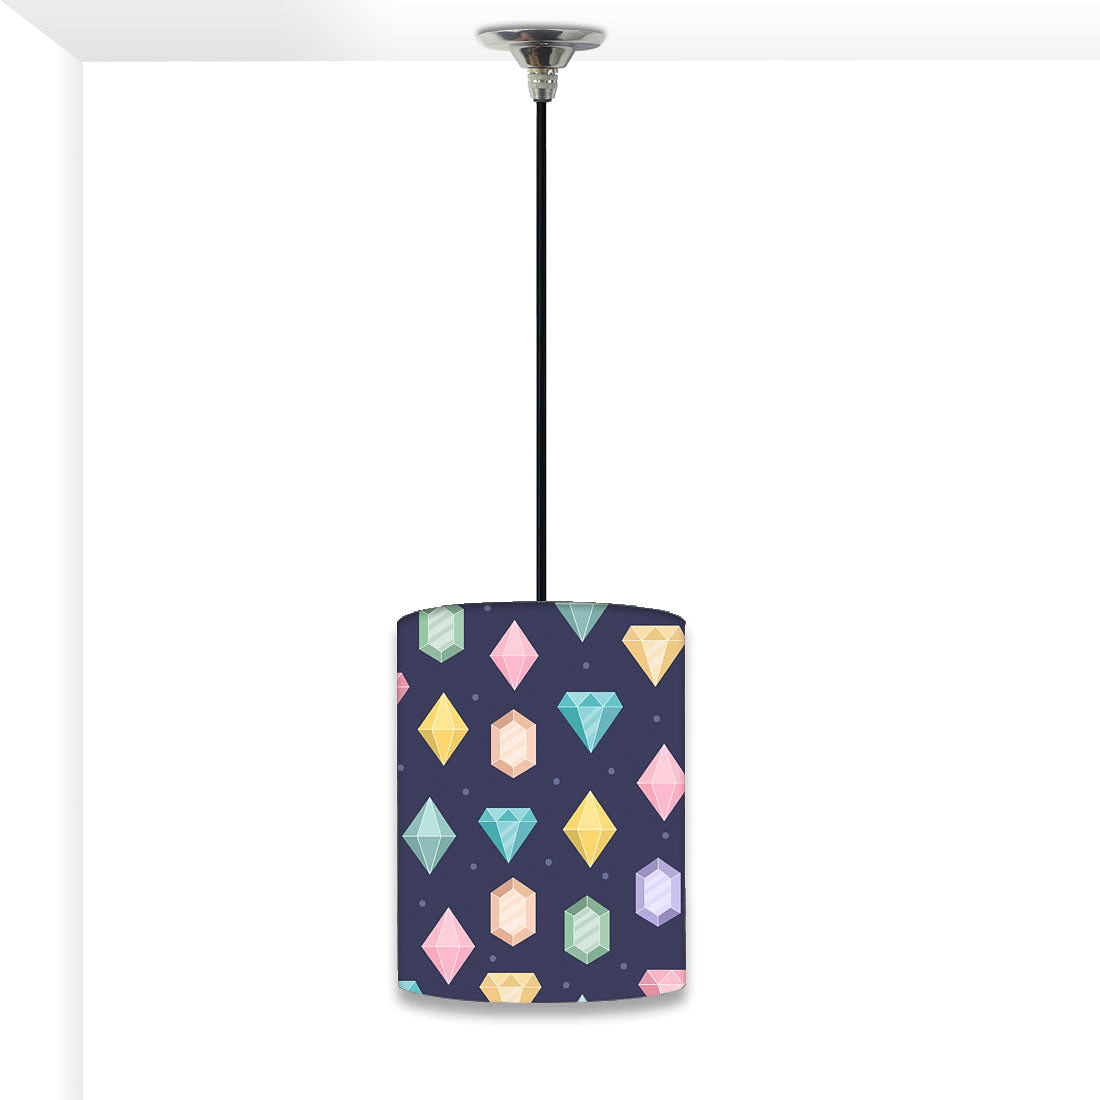 Hanging Pendant Lamp for Living-Room